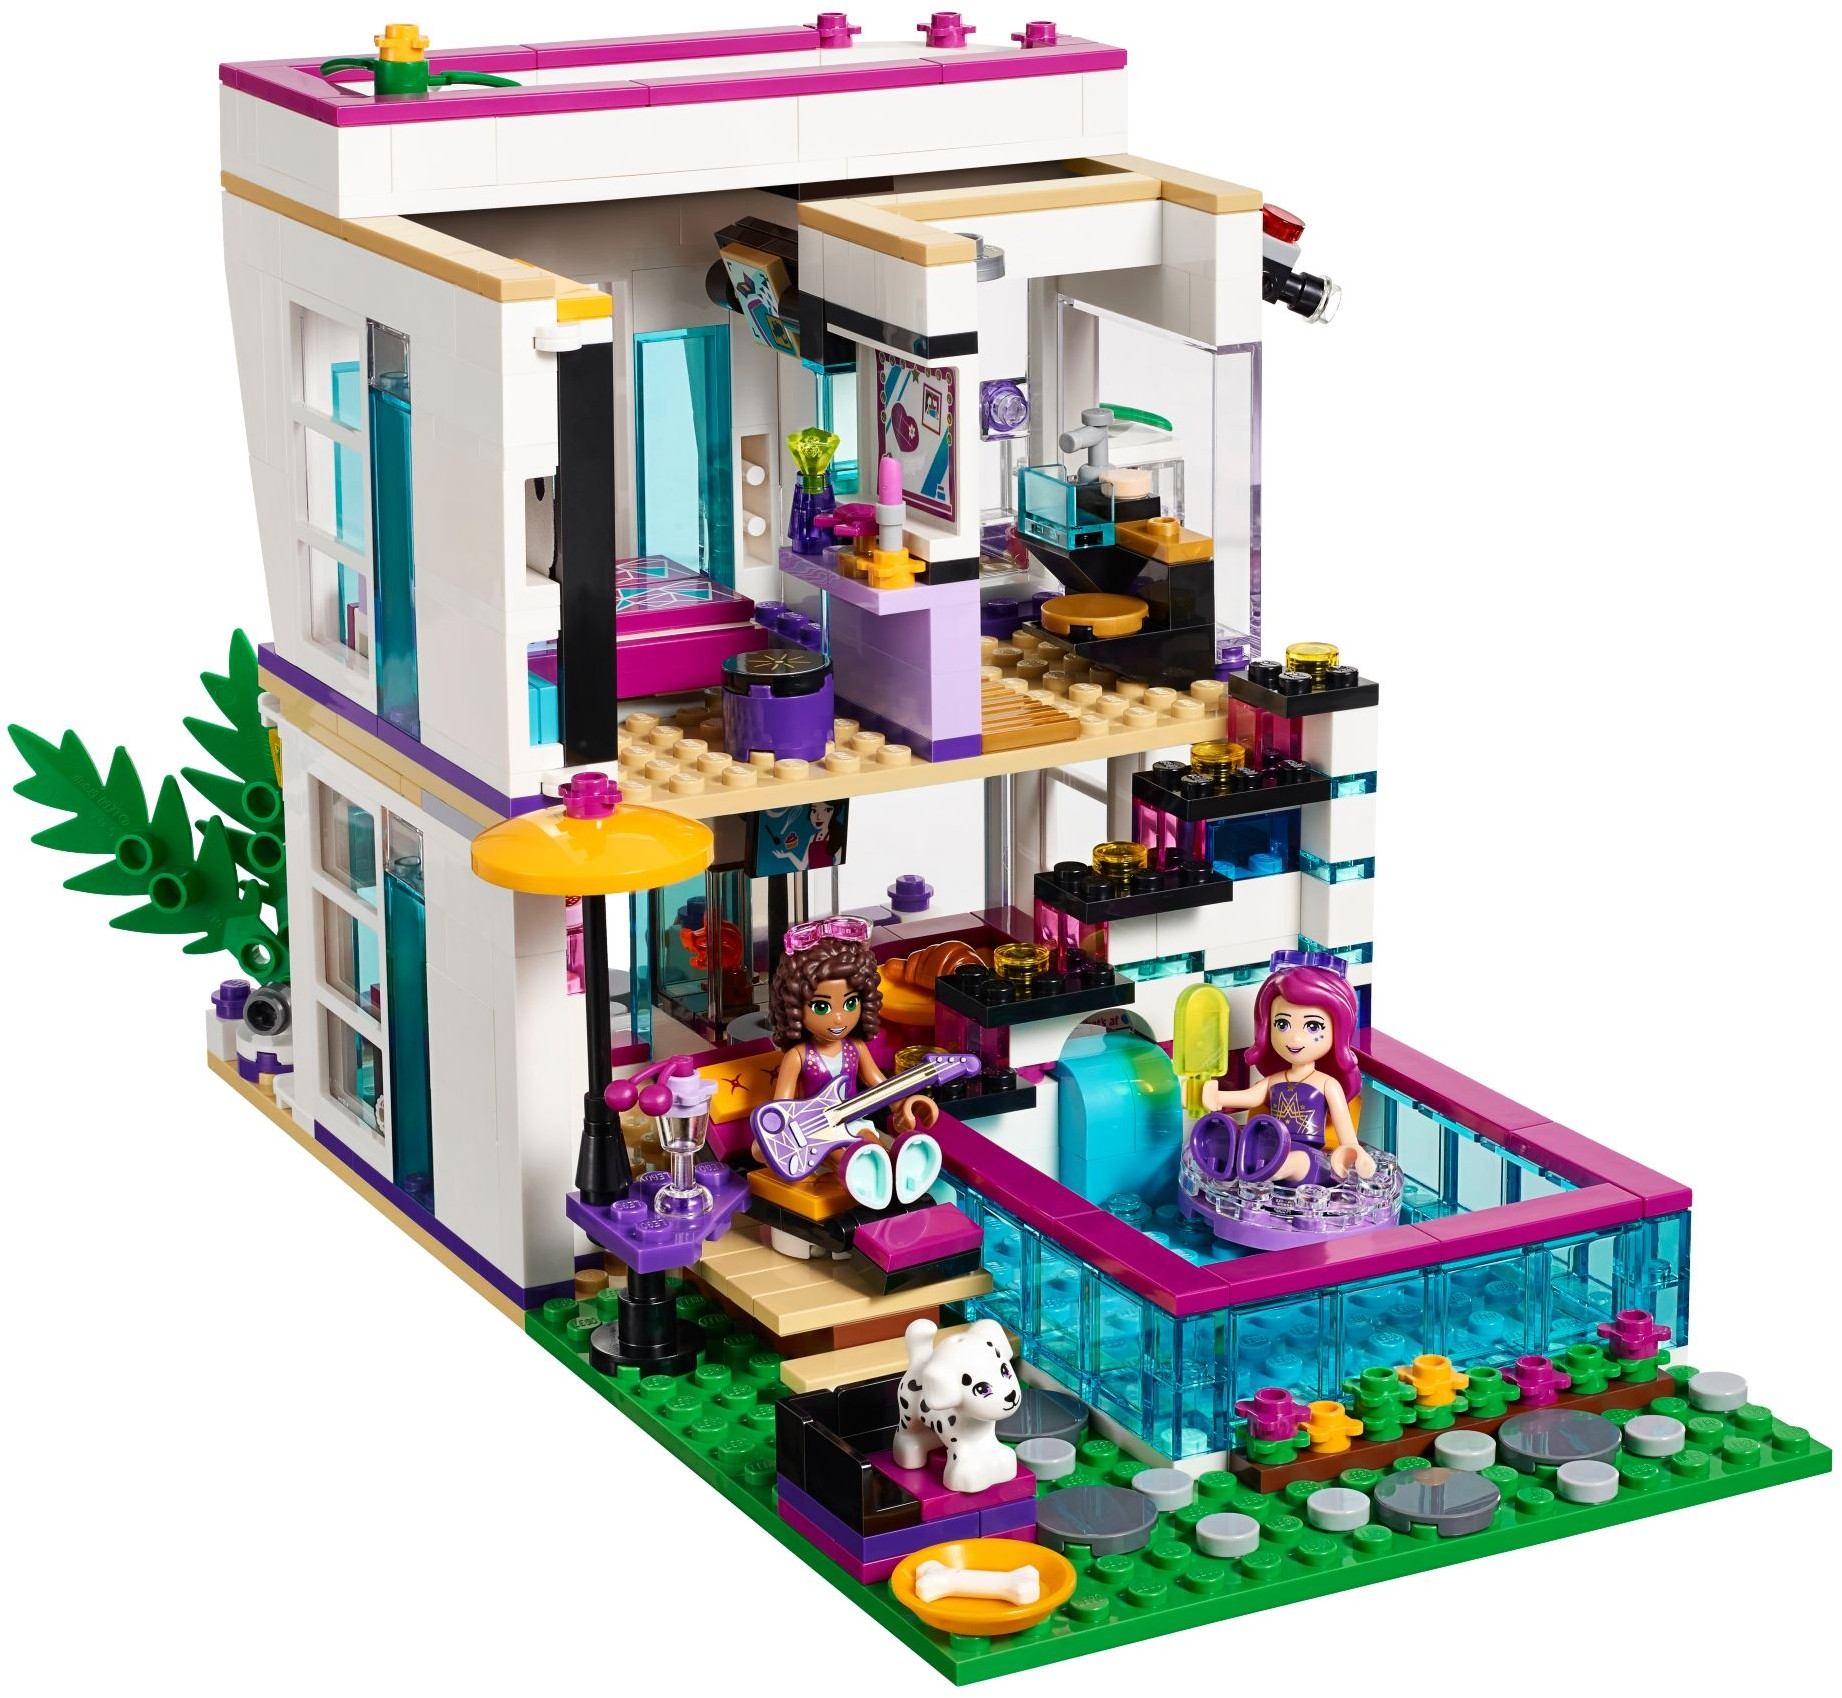 lego friends 41135 pas cher la maison de la pop star livi. Black Bedroom Furniture Sets. Home Design Ideas